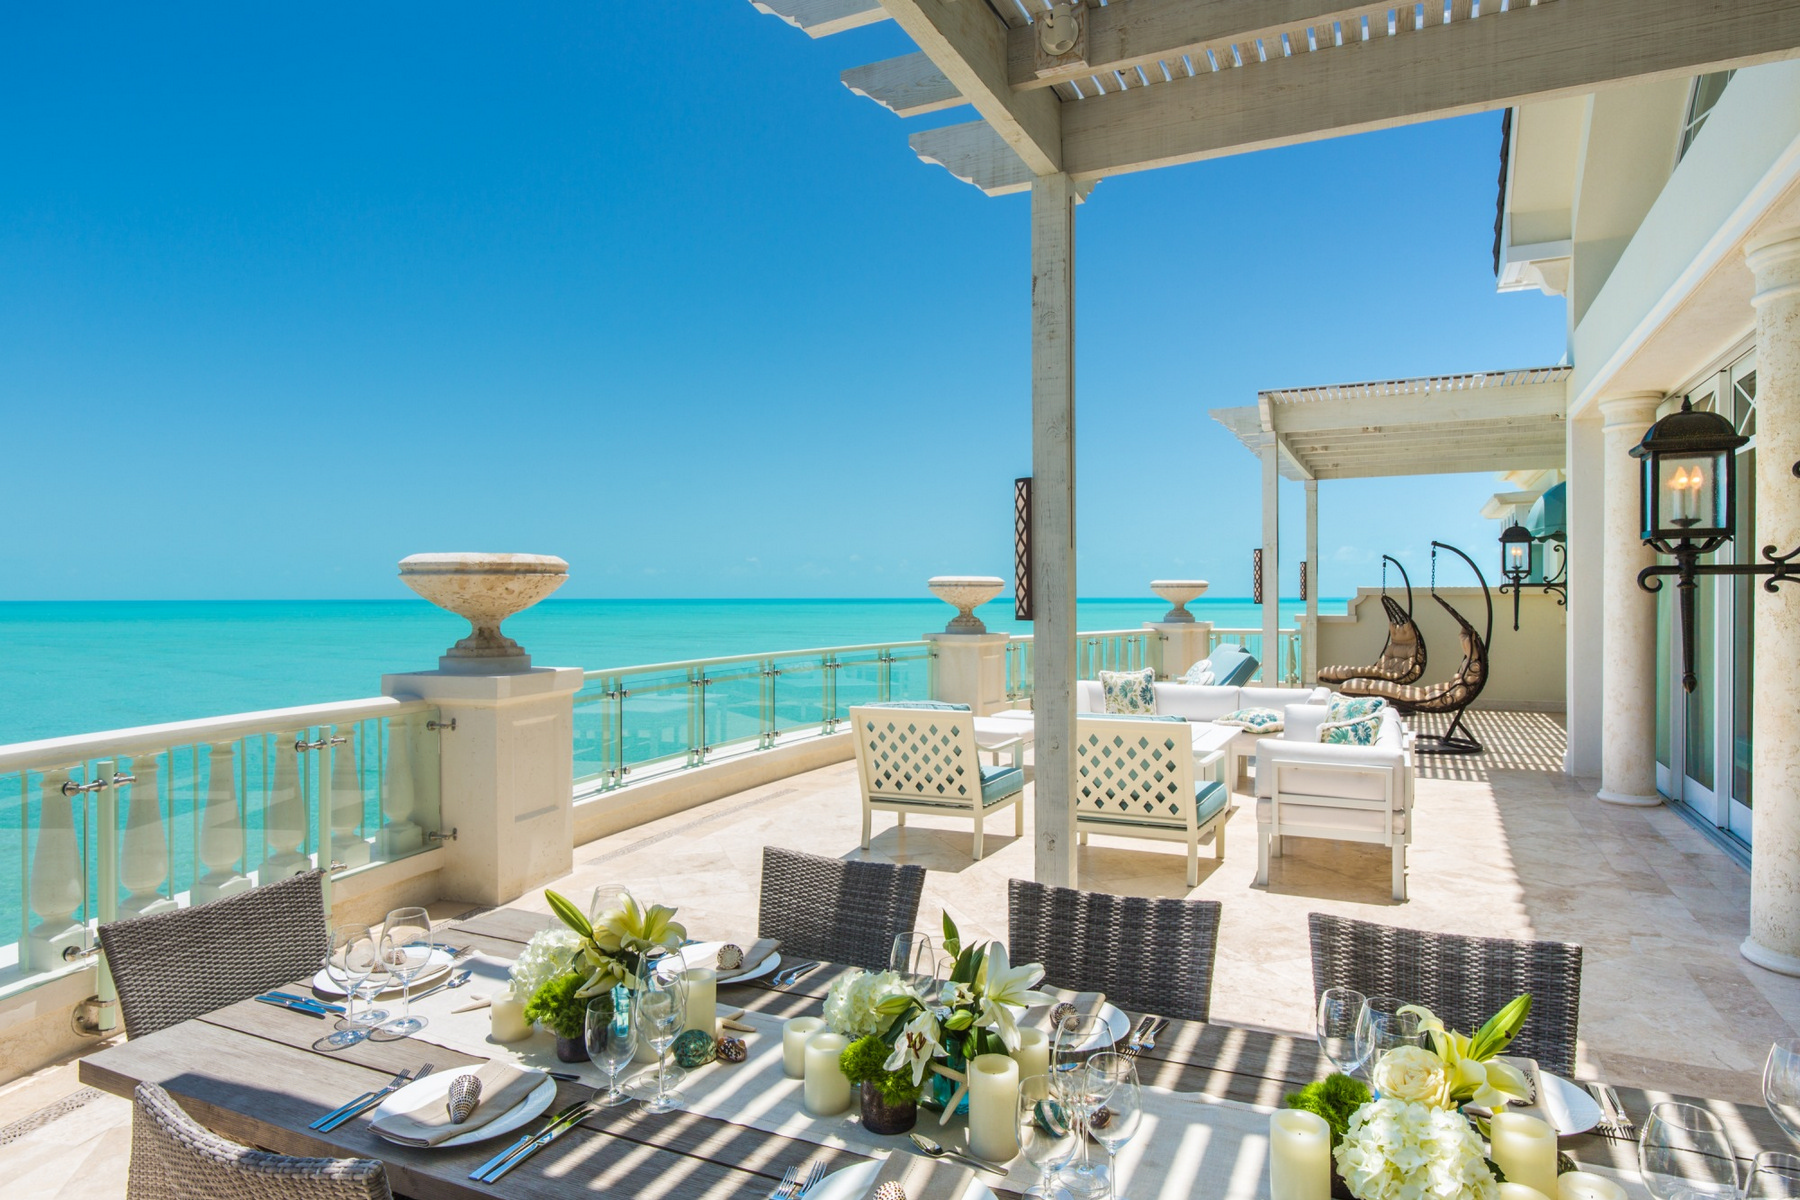 Additional photo for property listing at The Shore Club ~ Penthouse 1504.06.09 Beachfront Long Bay, Providenciales TKCA 1ZZ Turks And Caicos Islands